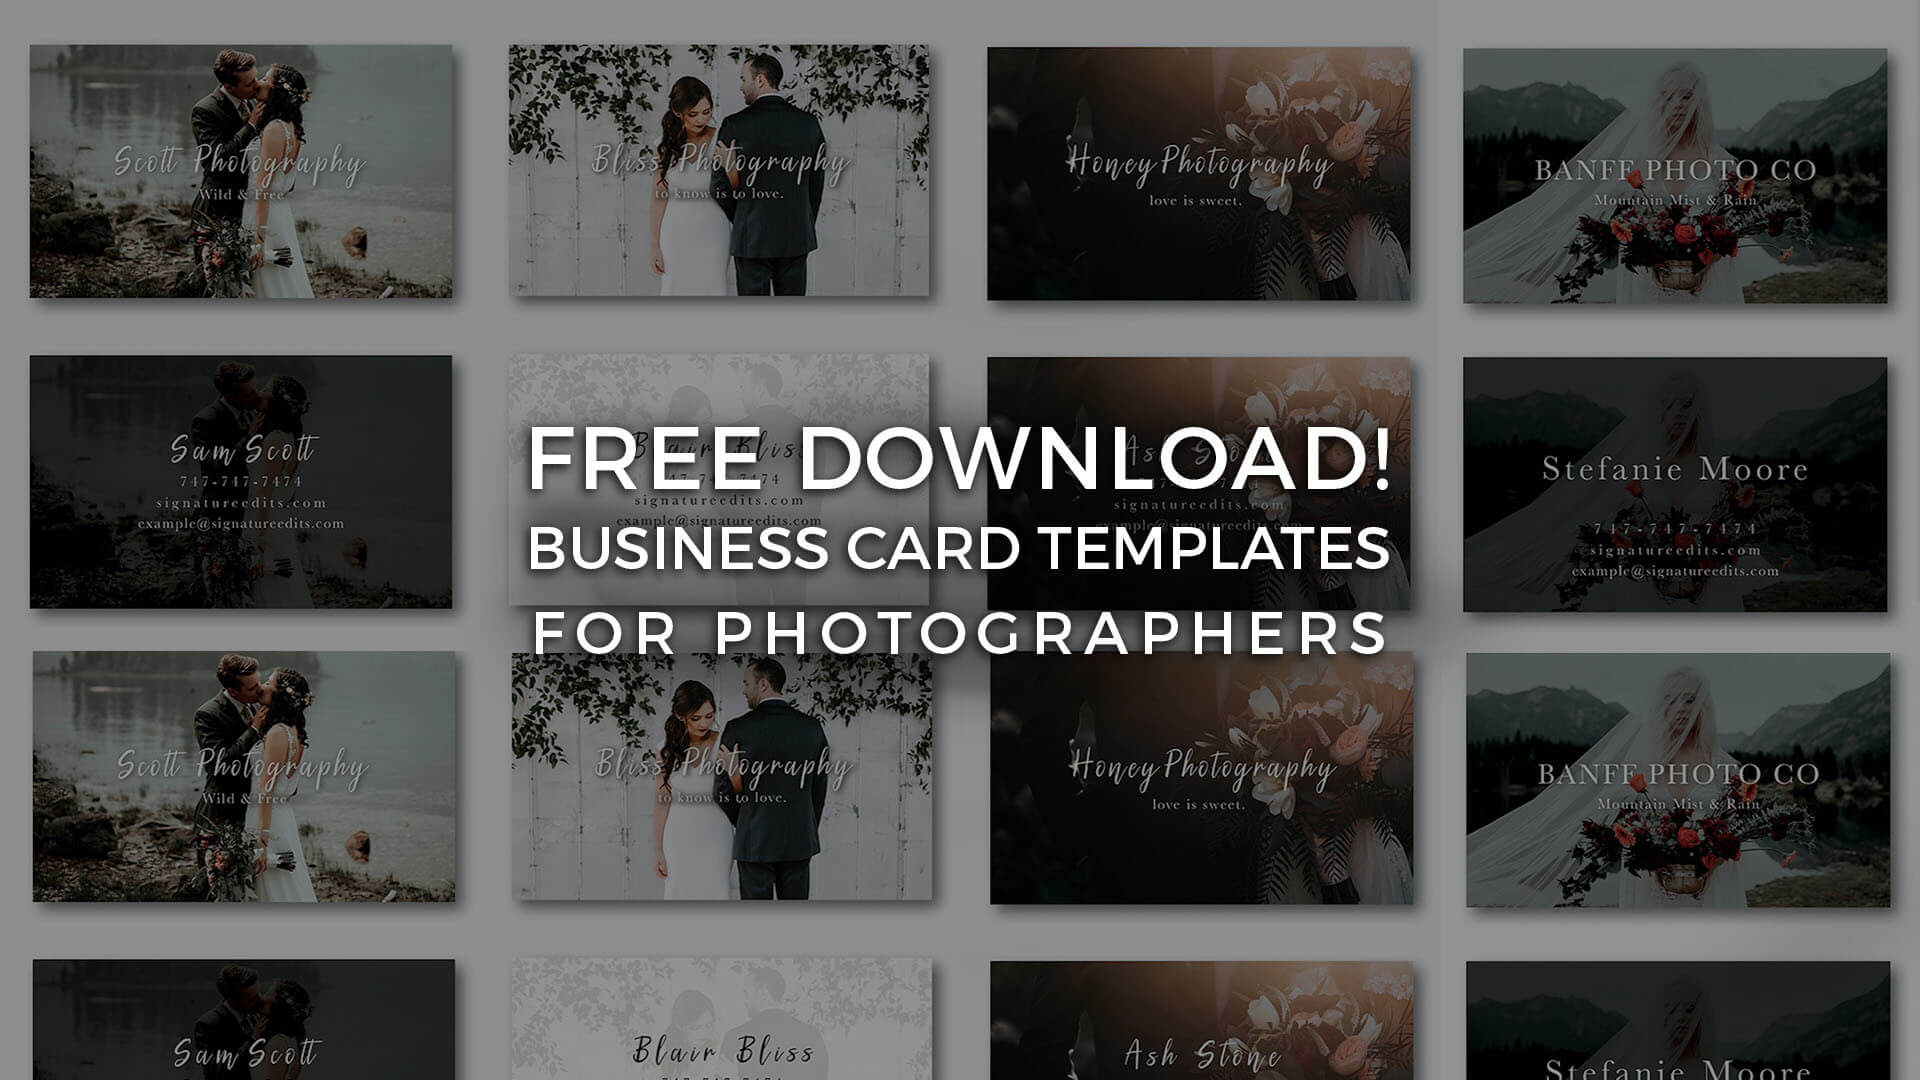 Free Photographer Business Card Templates! - Signature Edits Throughout Free Business Card Templates For Photographers